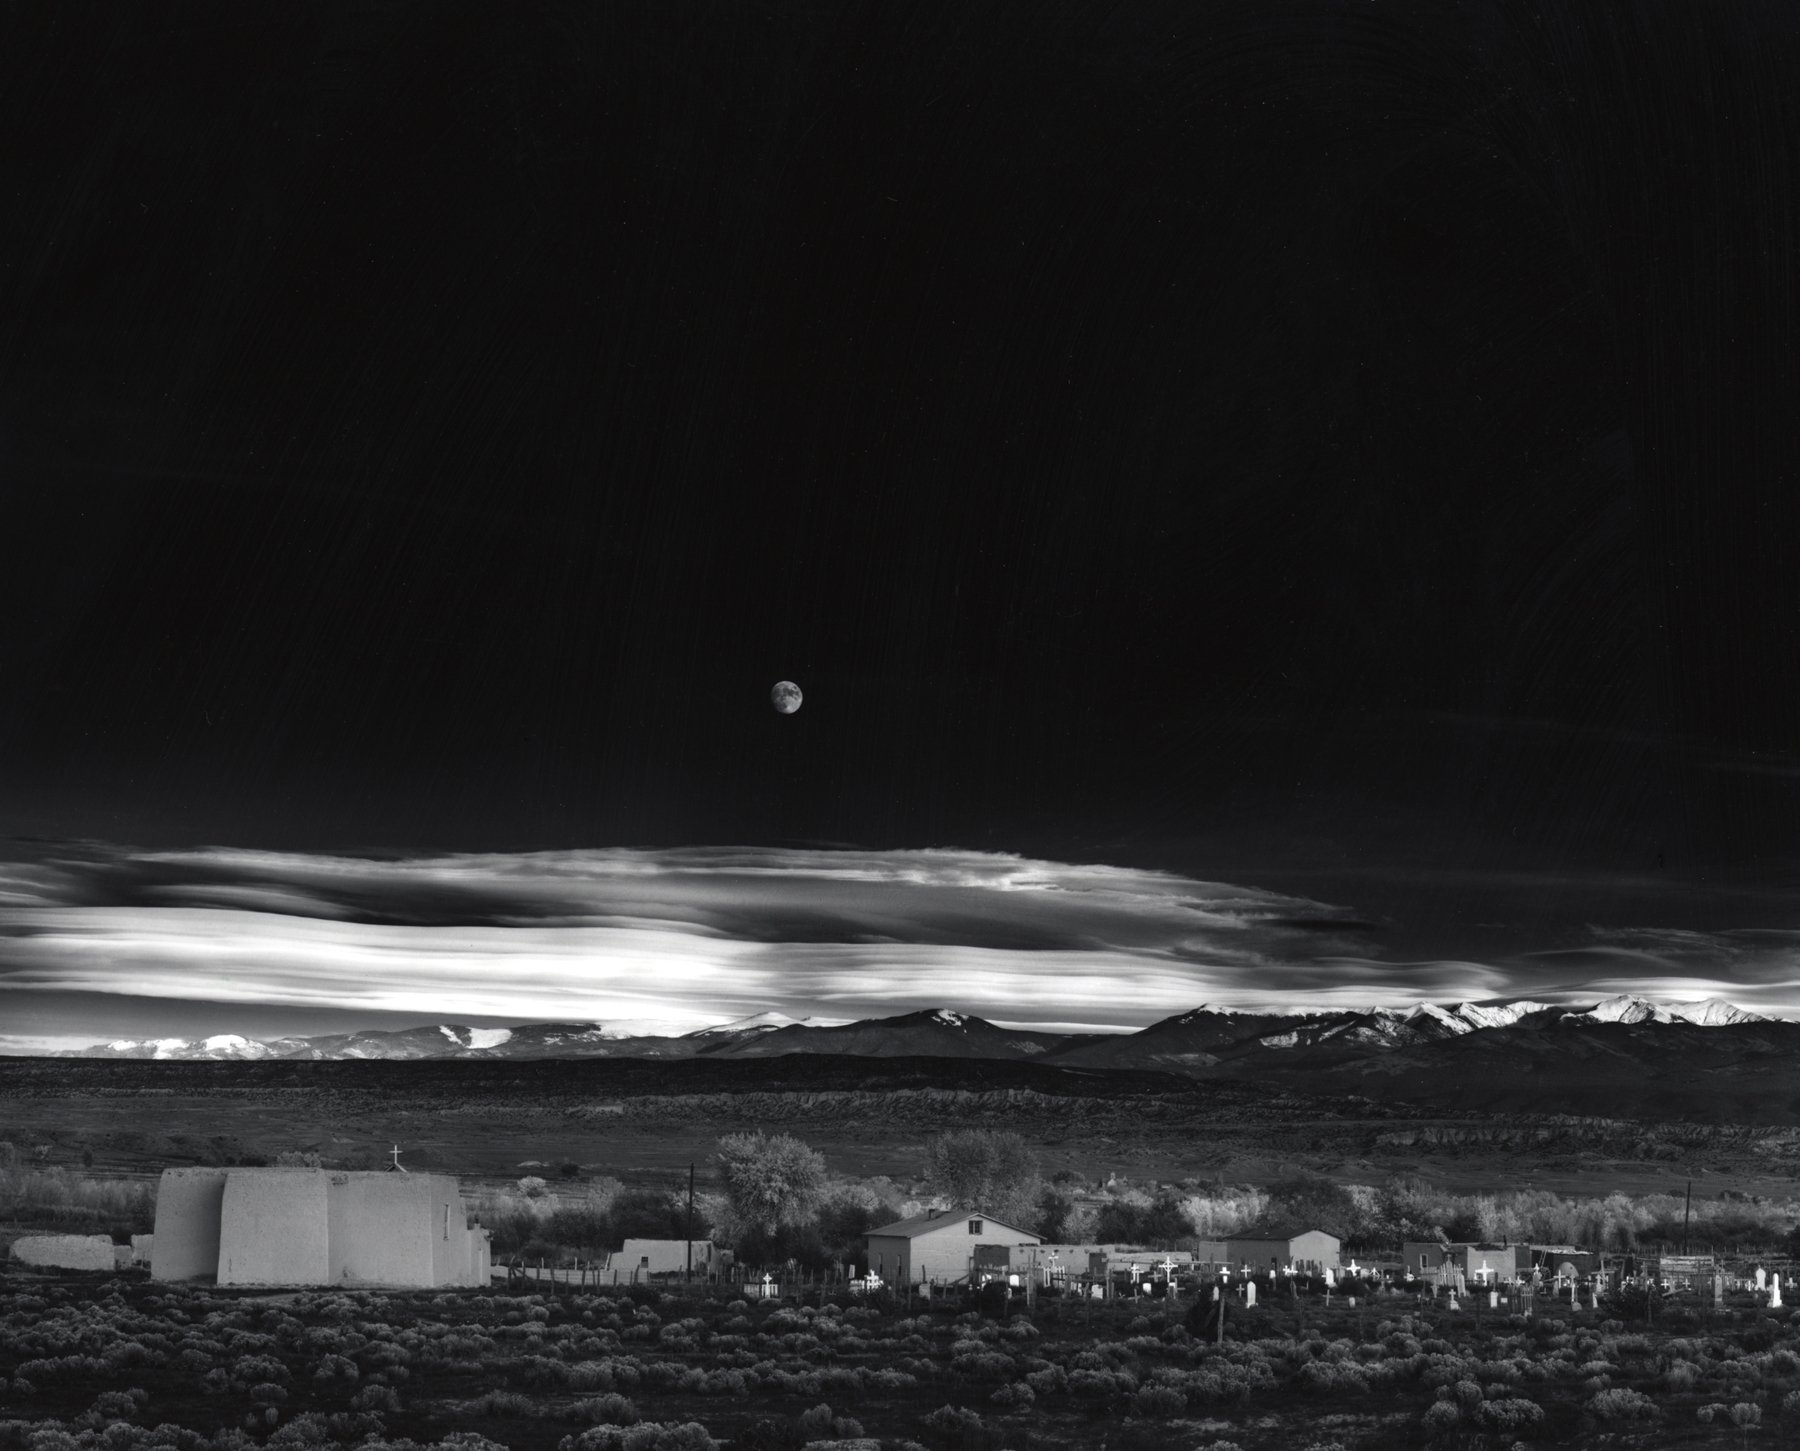 Ansel Adams : Moonrise, Hernandez. Tirage final